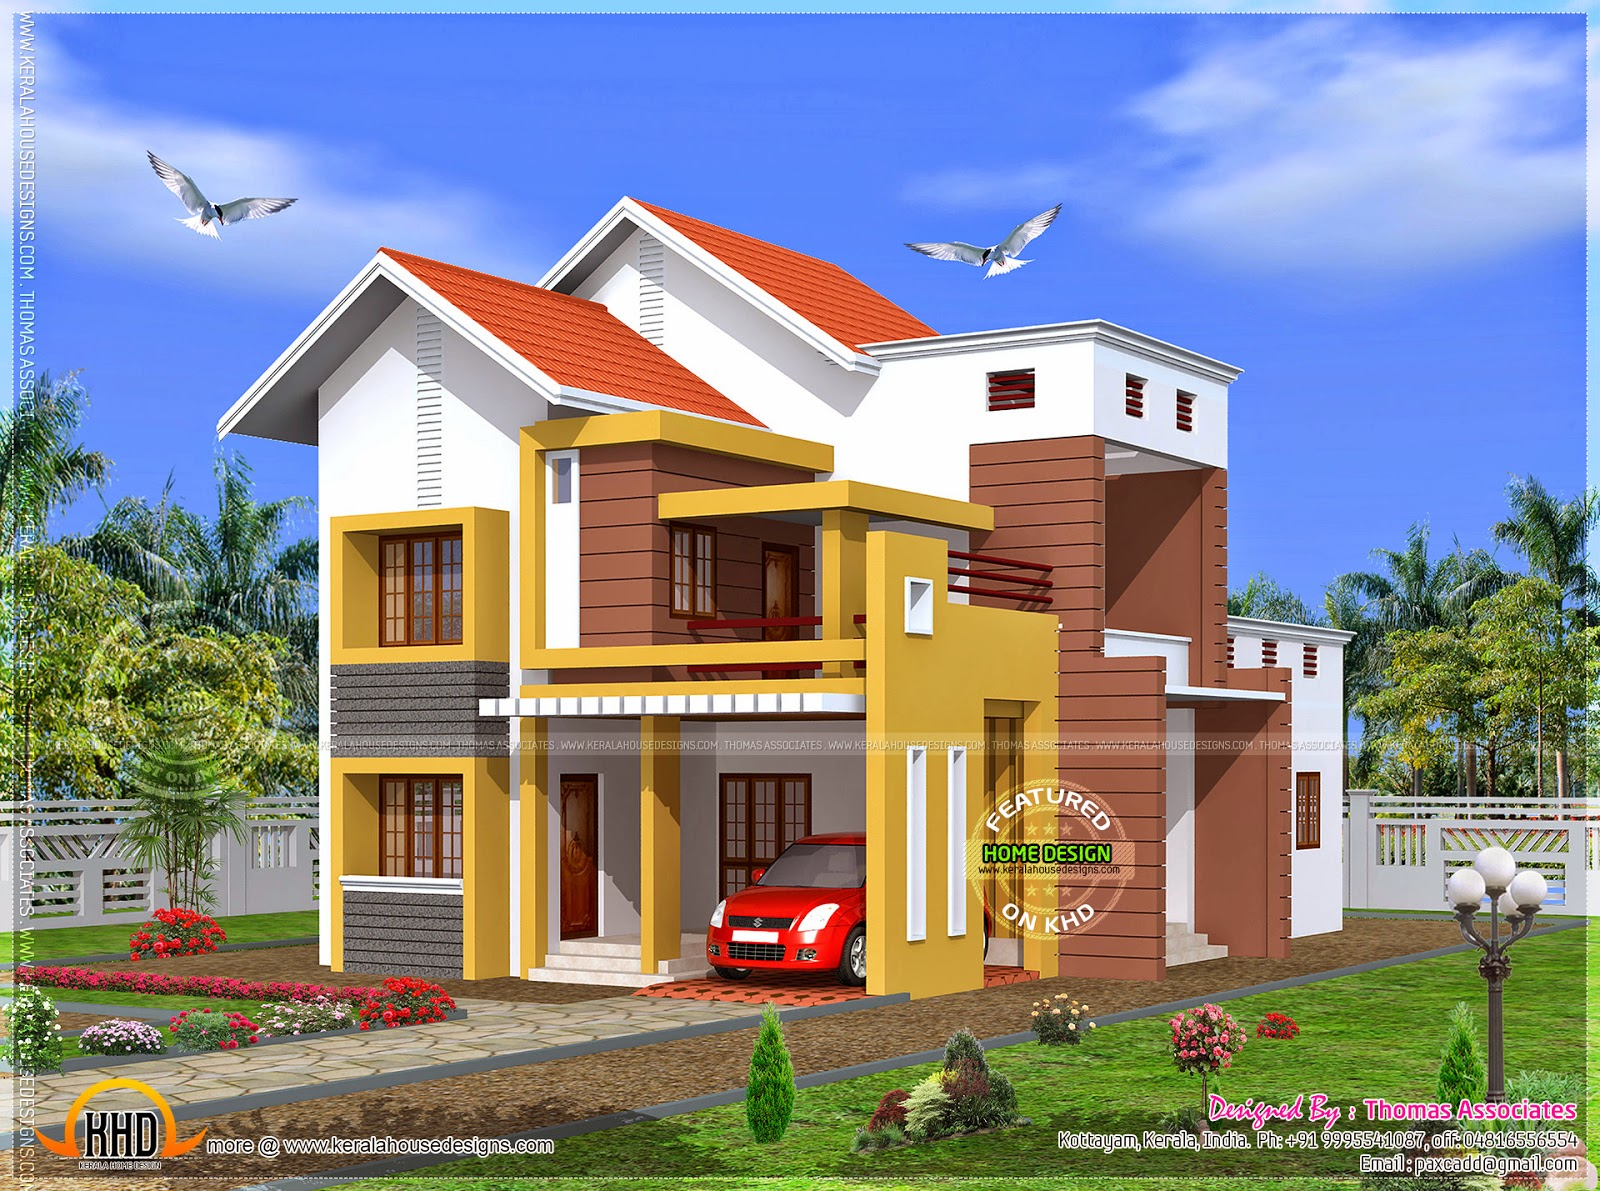 3 Bedroom House Design In 1850 Square Feet Home Kerala Plans